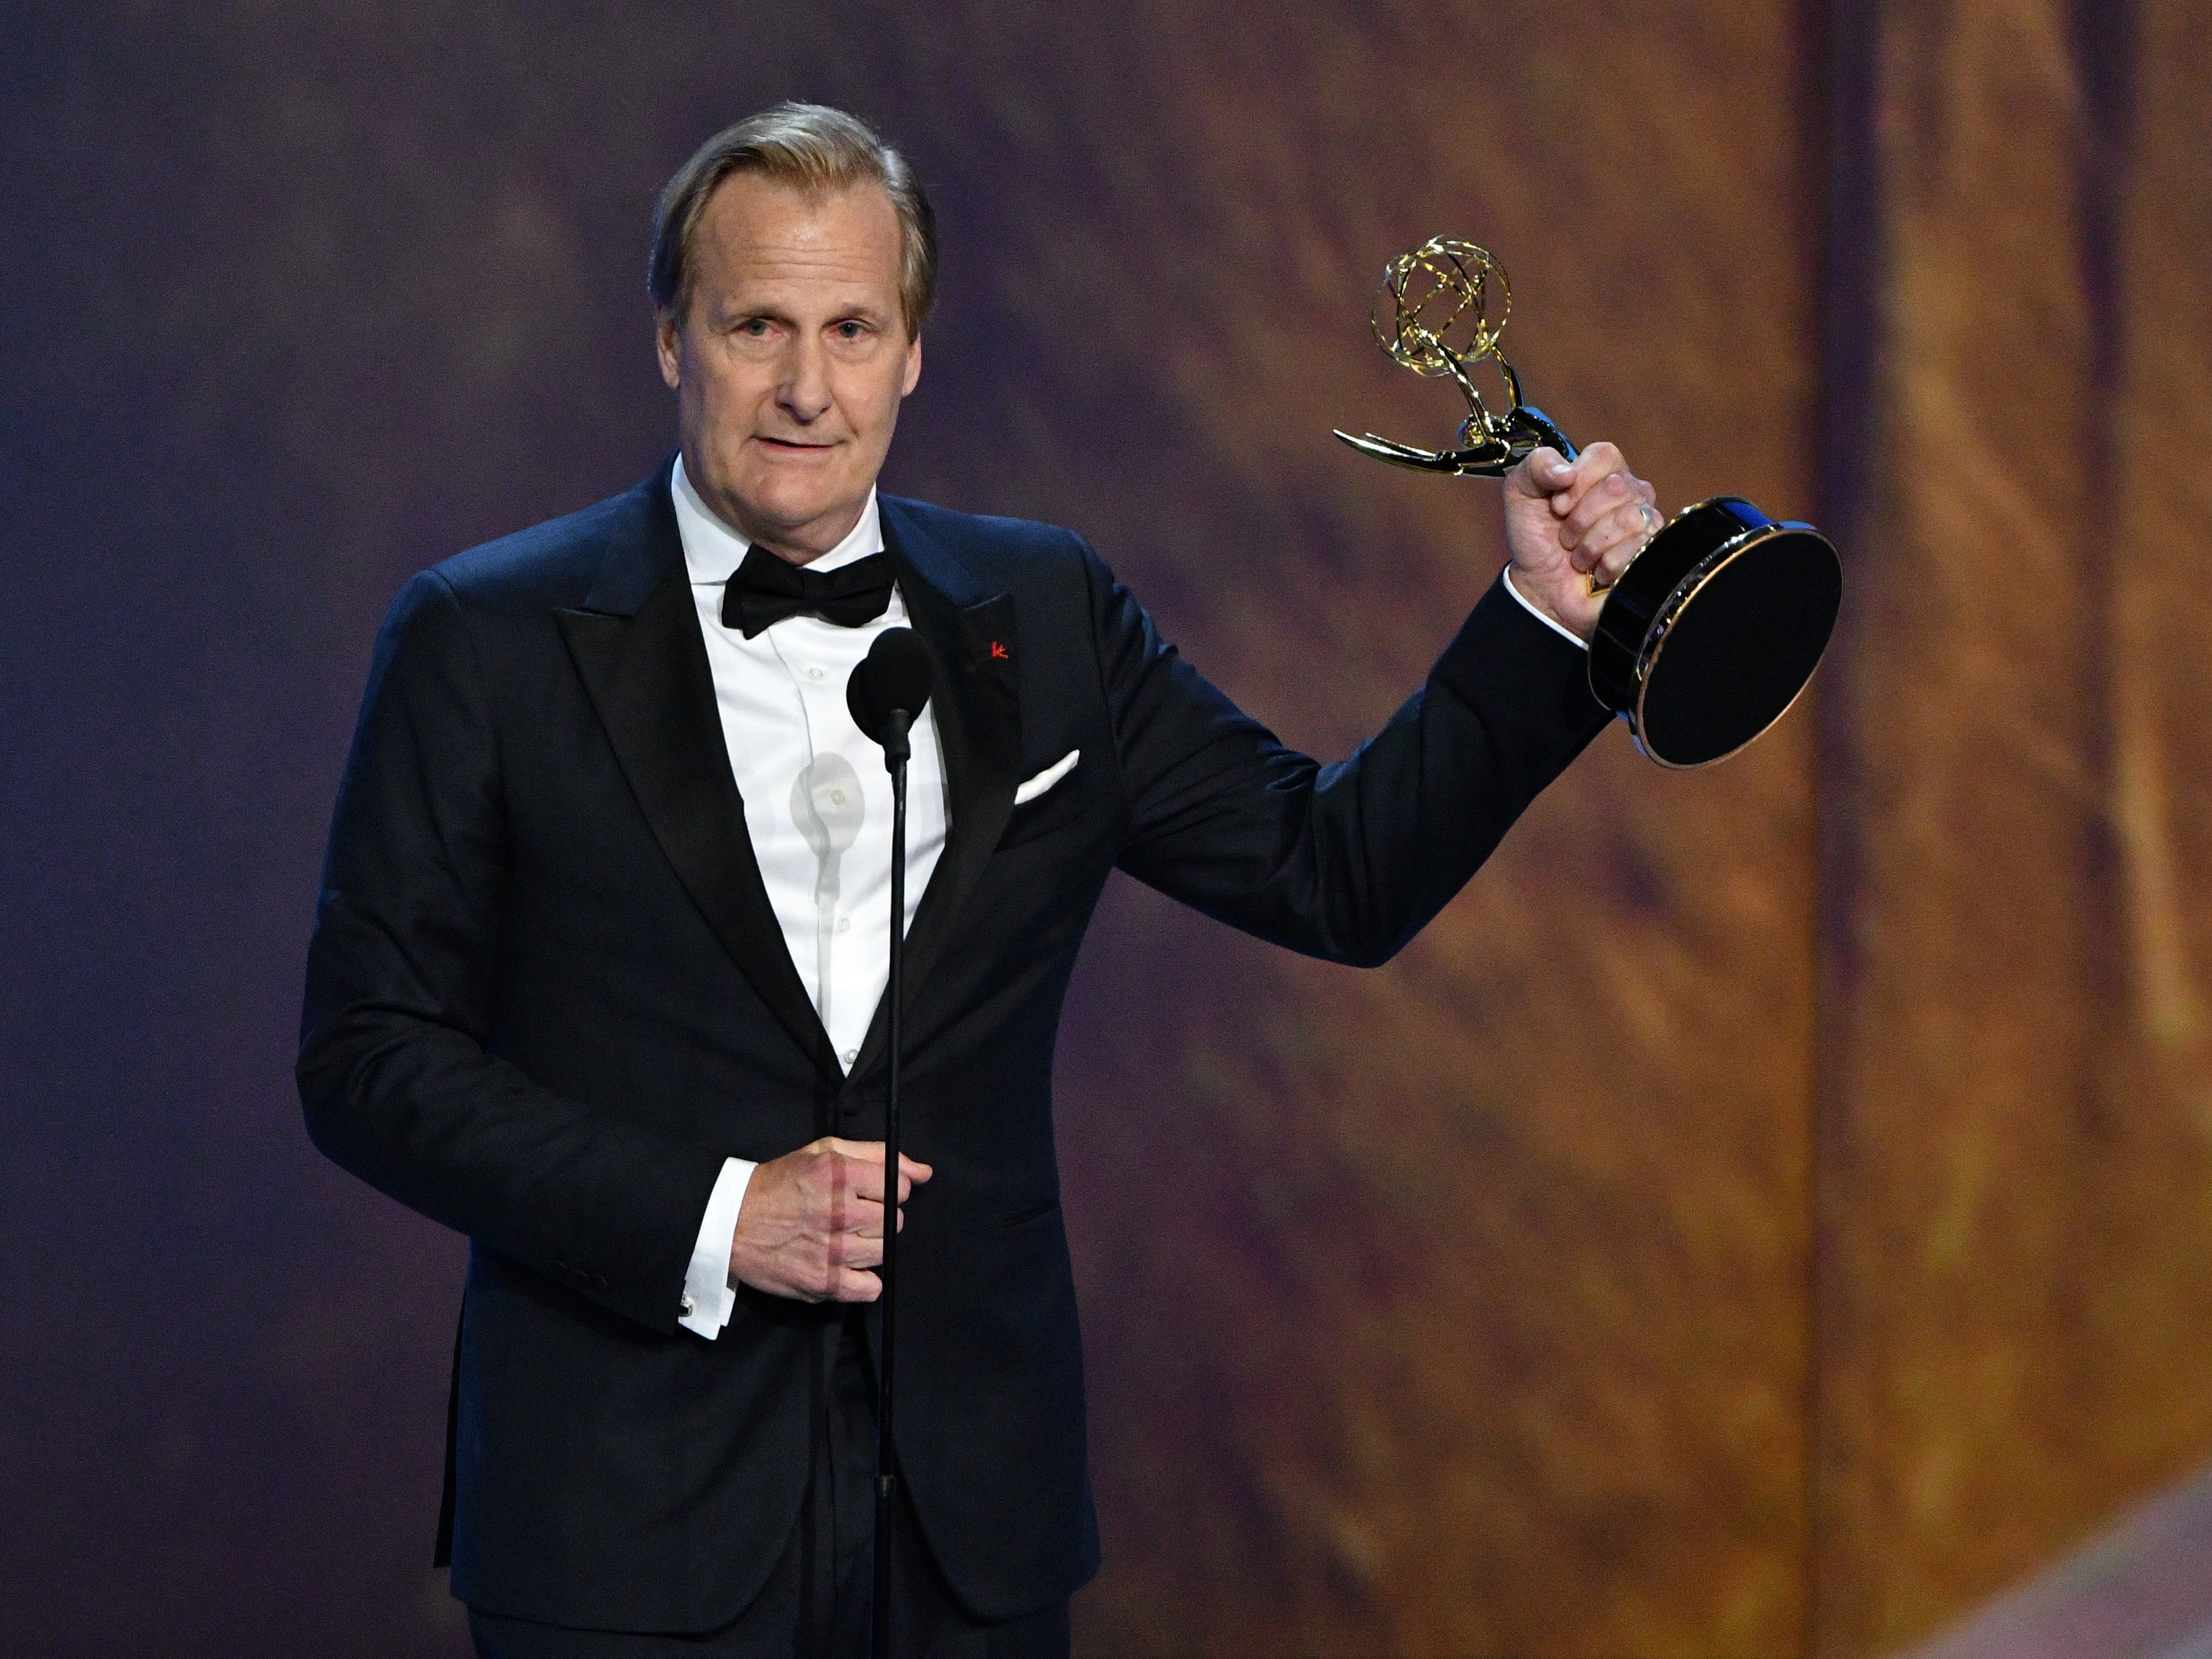 """Jeff Daniels accepts the award for supporting actor in a limited series or movie for his role in """"Godless"""" on Netflix. He thanked his horse."""